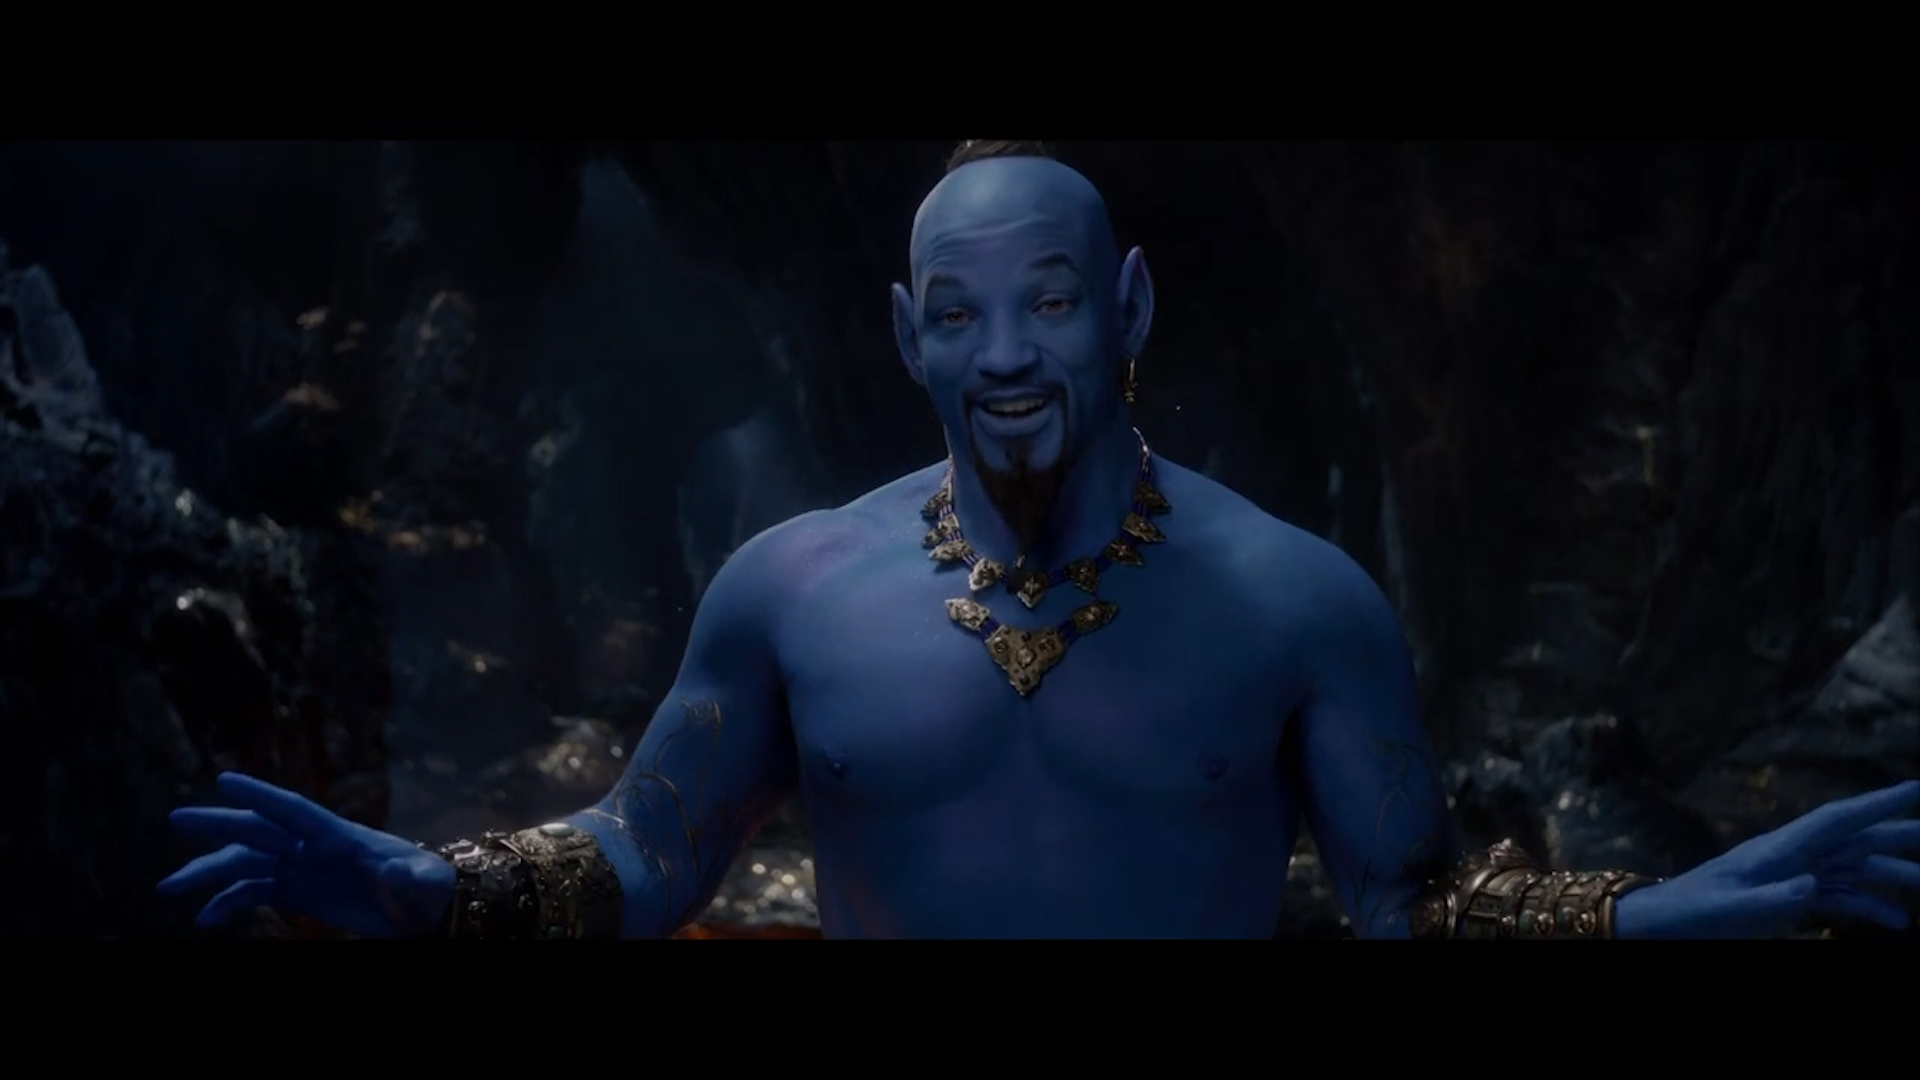 New Aladdin trailer released during Grammys reveals Will Smith as 'Genie'